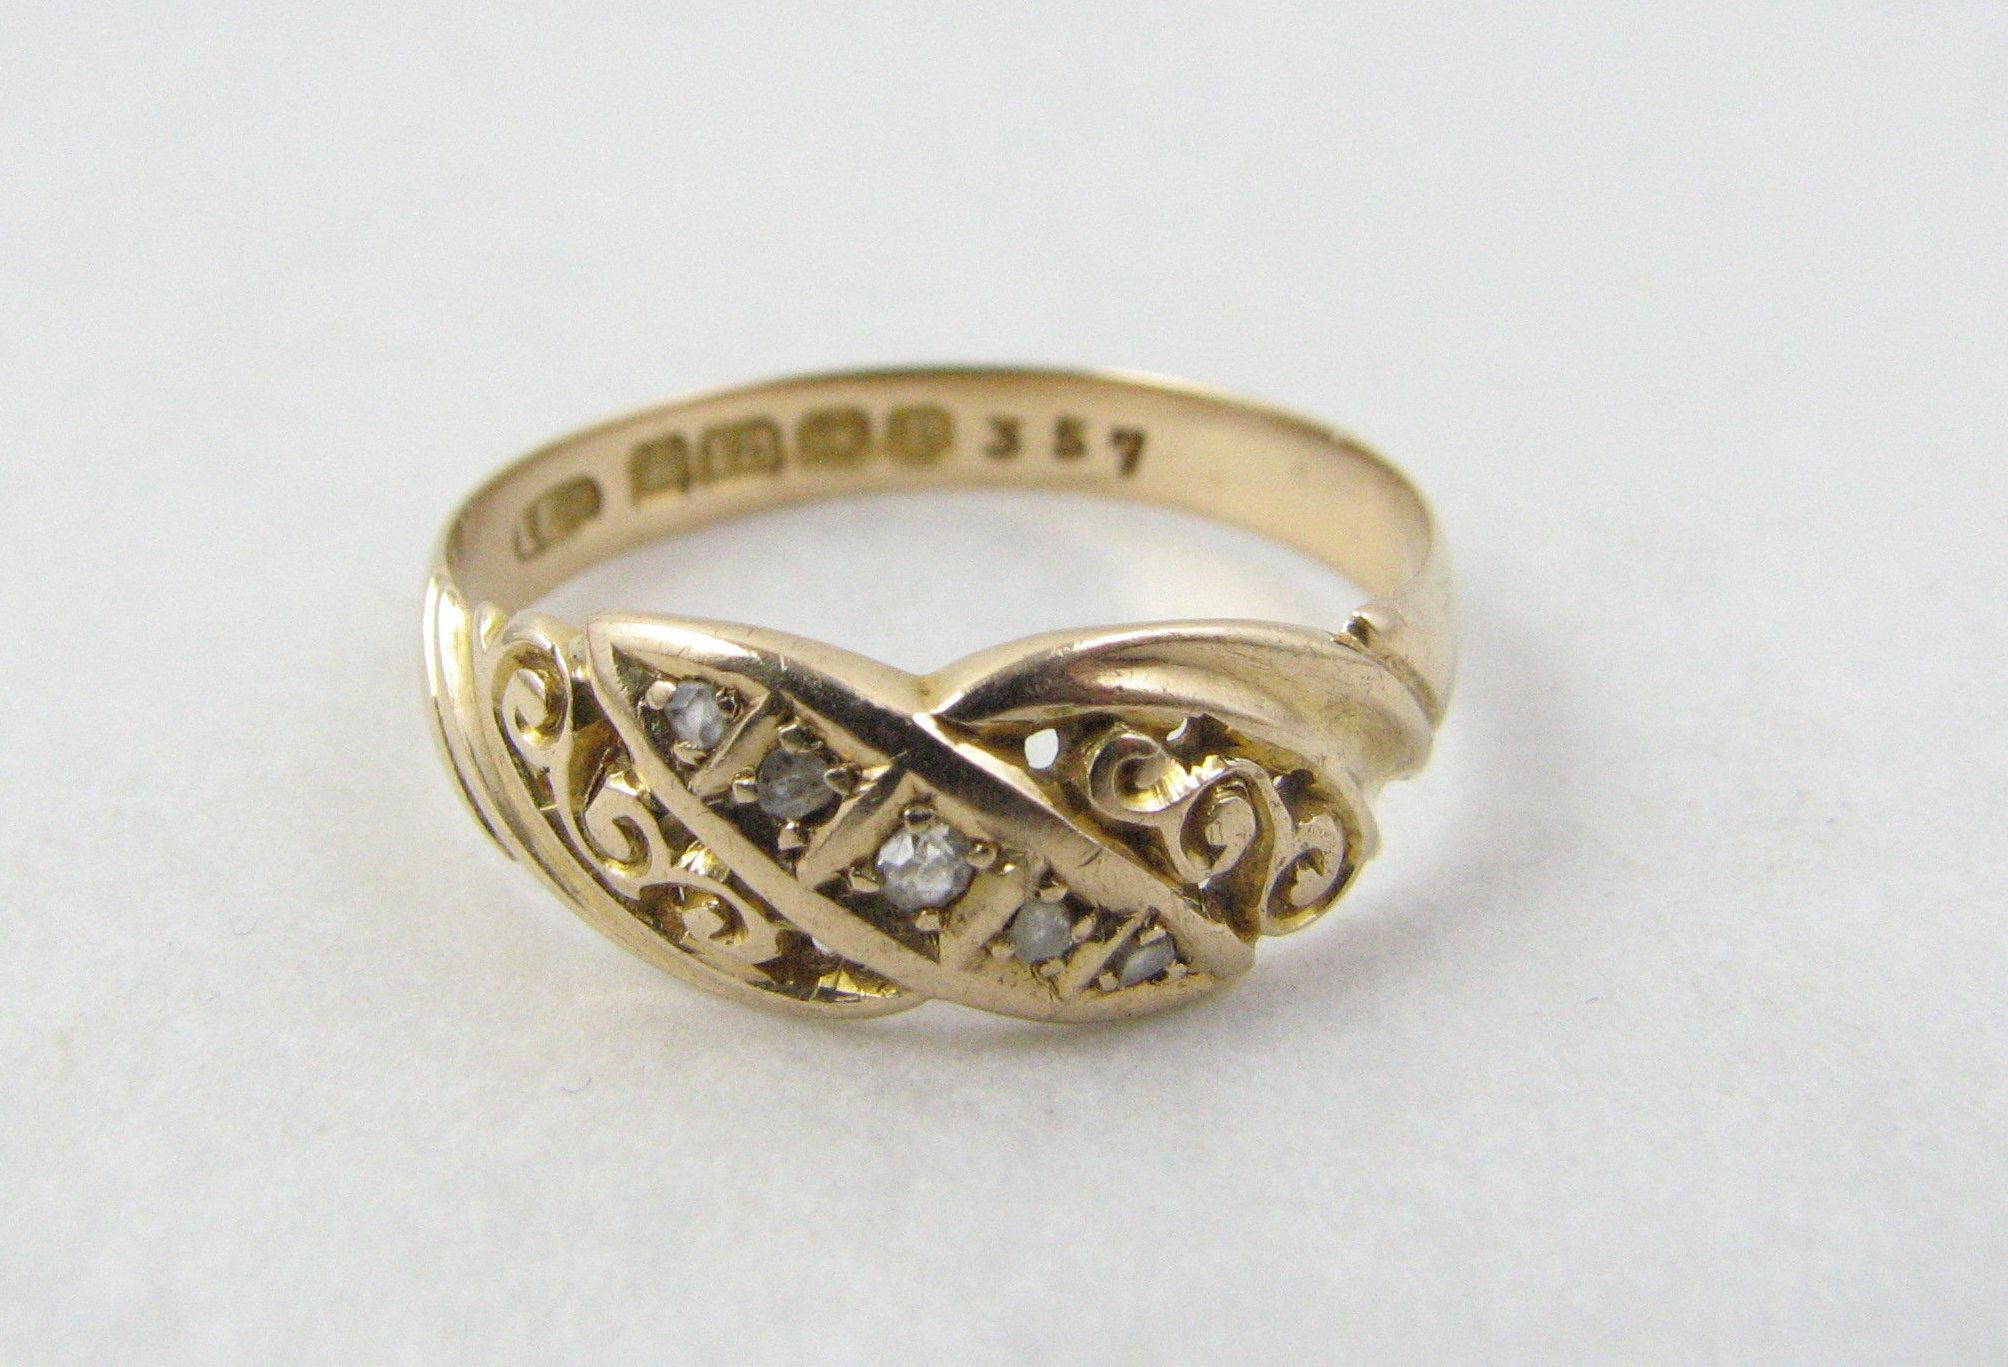 Antique Loach Brothers 18 Ct Gold Ring With Decorative Scroll Etsy Antique Gold Rings Birmingham Jewellery Quarter Gold Rings